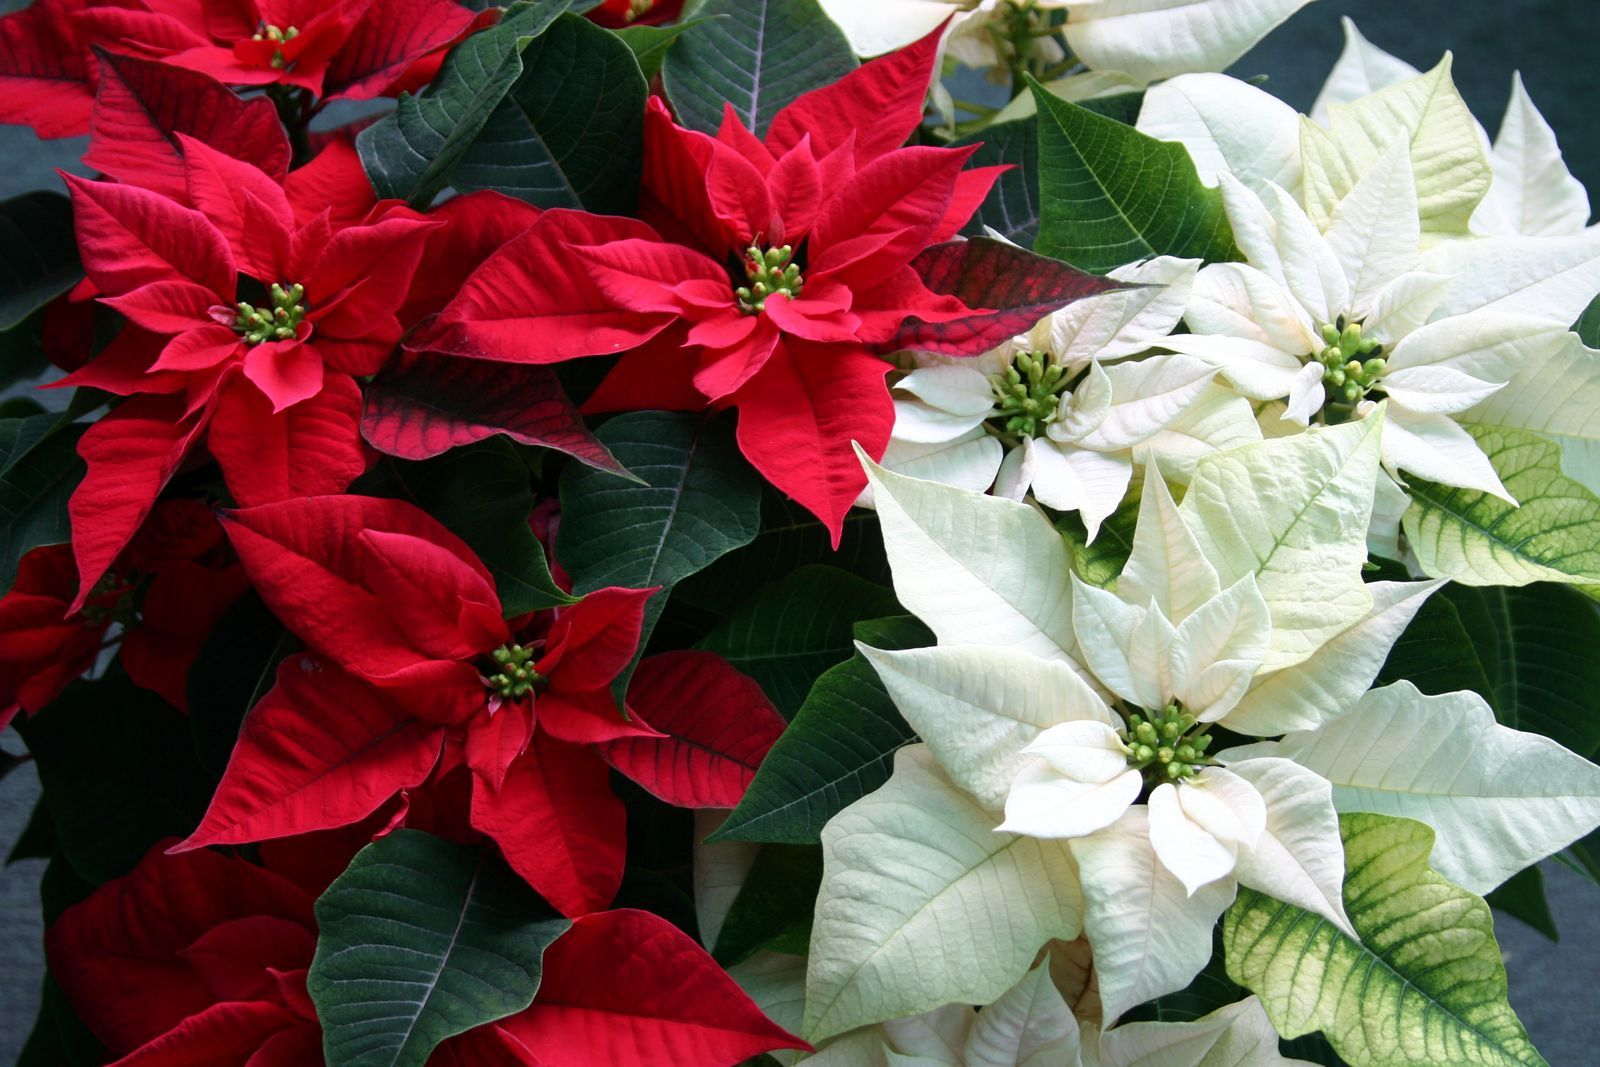 Stay Alert These Toxic Holiday Plants Can Poison Your Pets Poinsettia Plant Christmas Plants Poinsettia Care